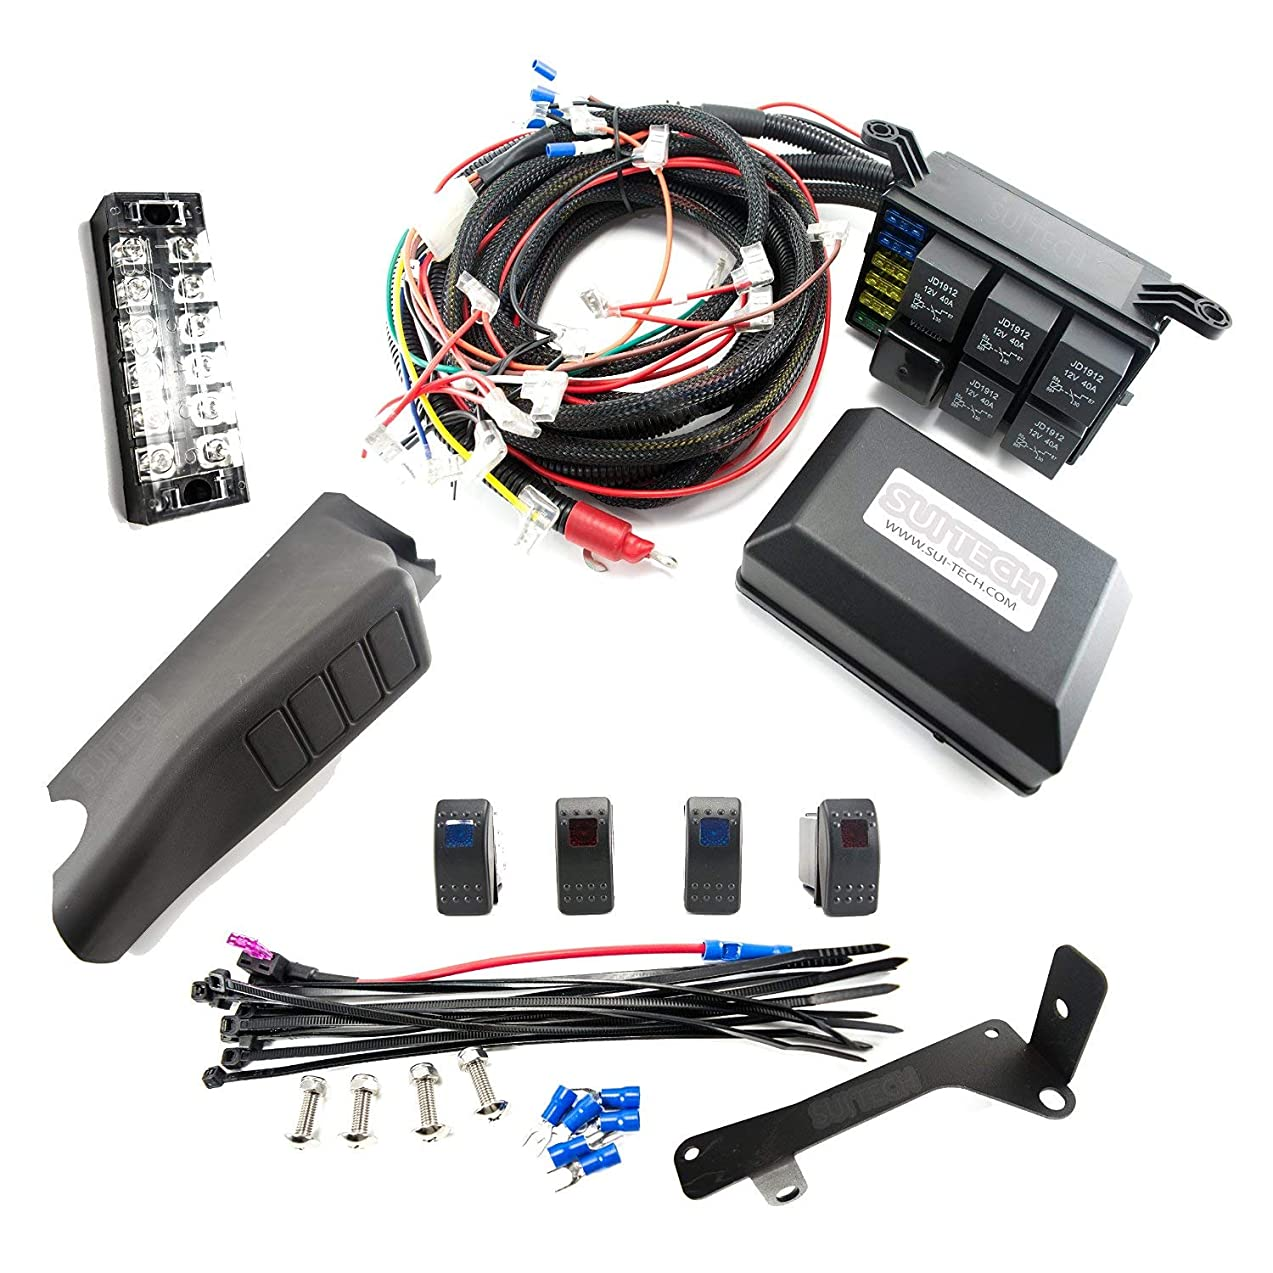 Relay Control Box for Jeep Wrangler JK - Electronic 6 Relay System Module - Wiring Harness Kit With FREE 4 Rocker Switch Mount - Power up to 6 Accessories and LED Off Road Light Bars (JK Version)